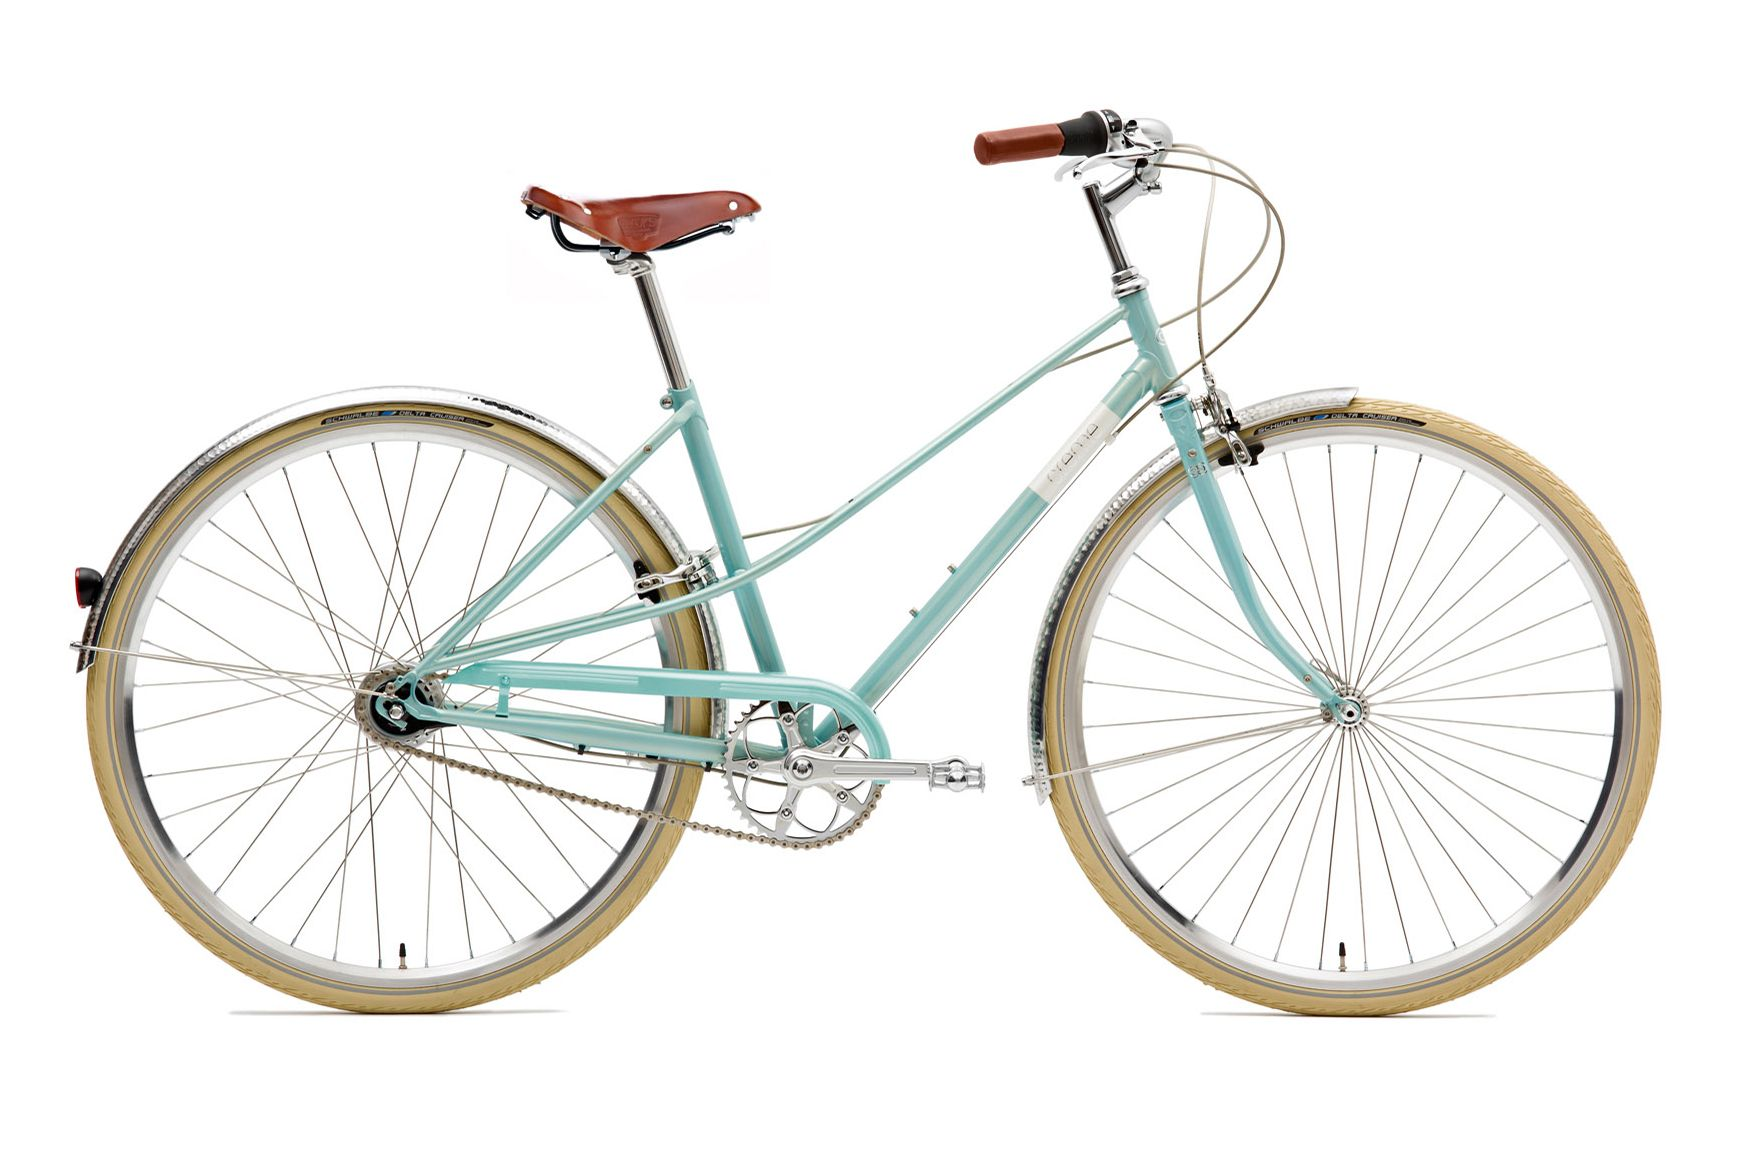 Creme Caferacer Lady Doppio 7-speed turquoise | Bicycling, Turquoise ...